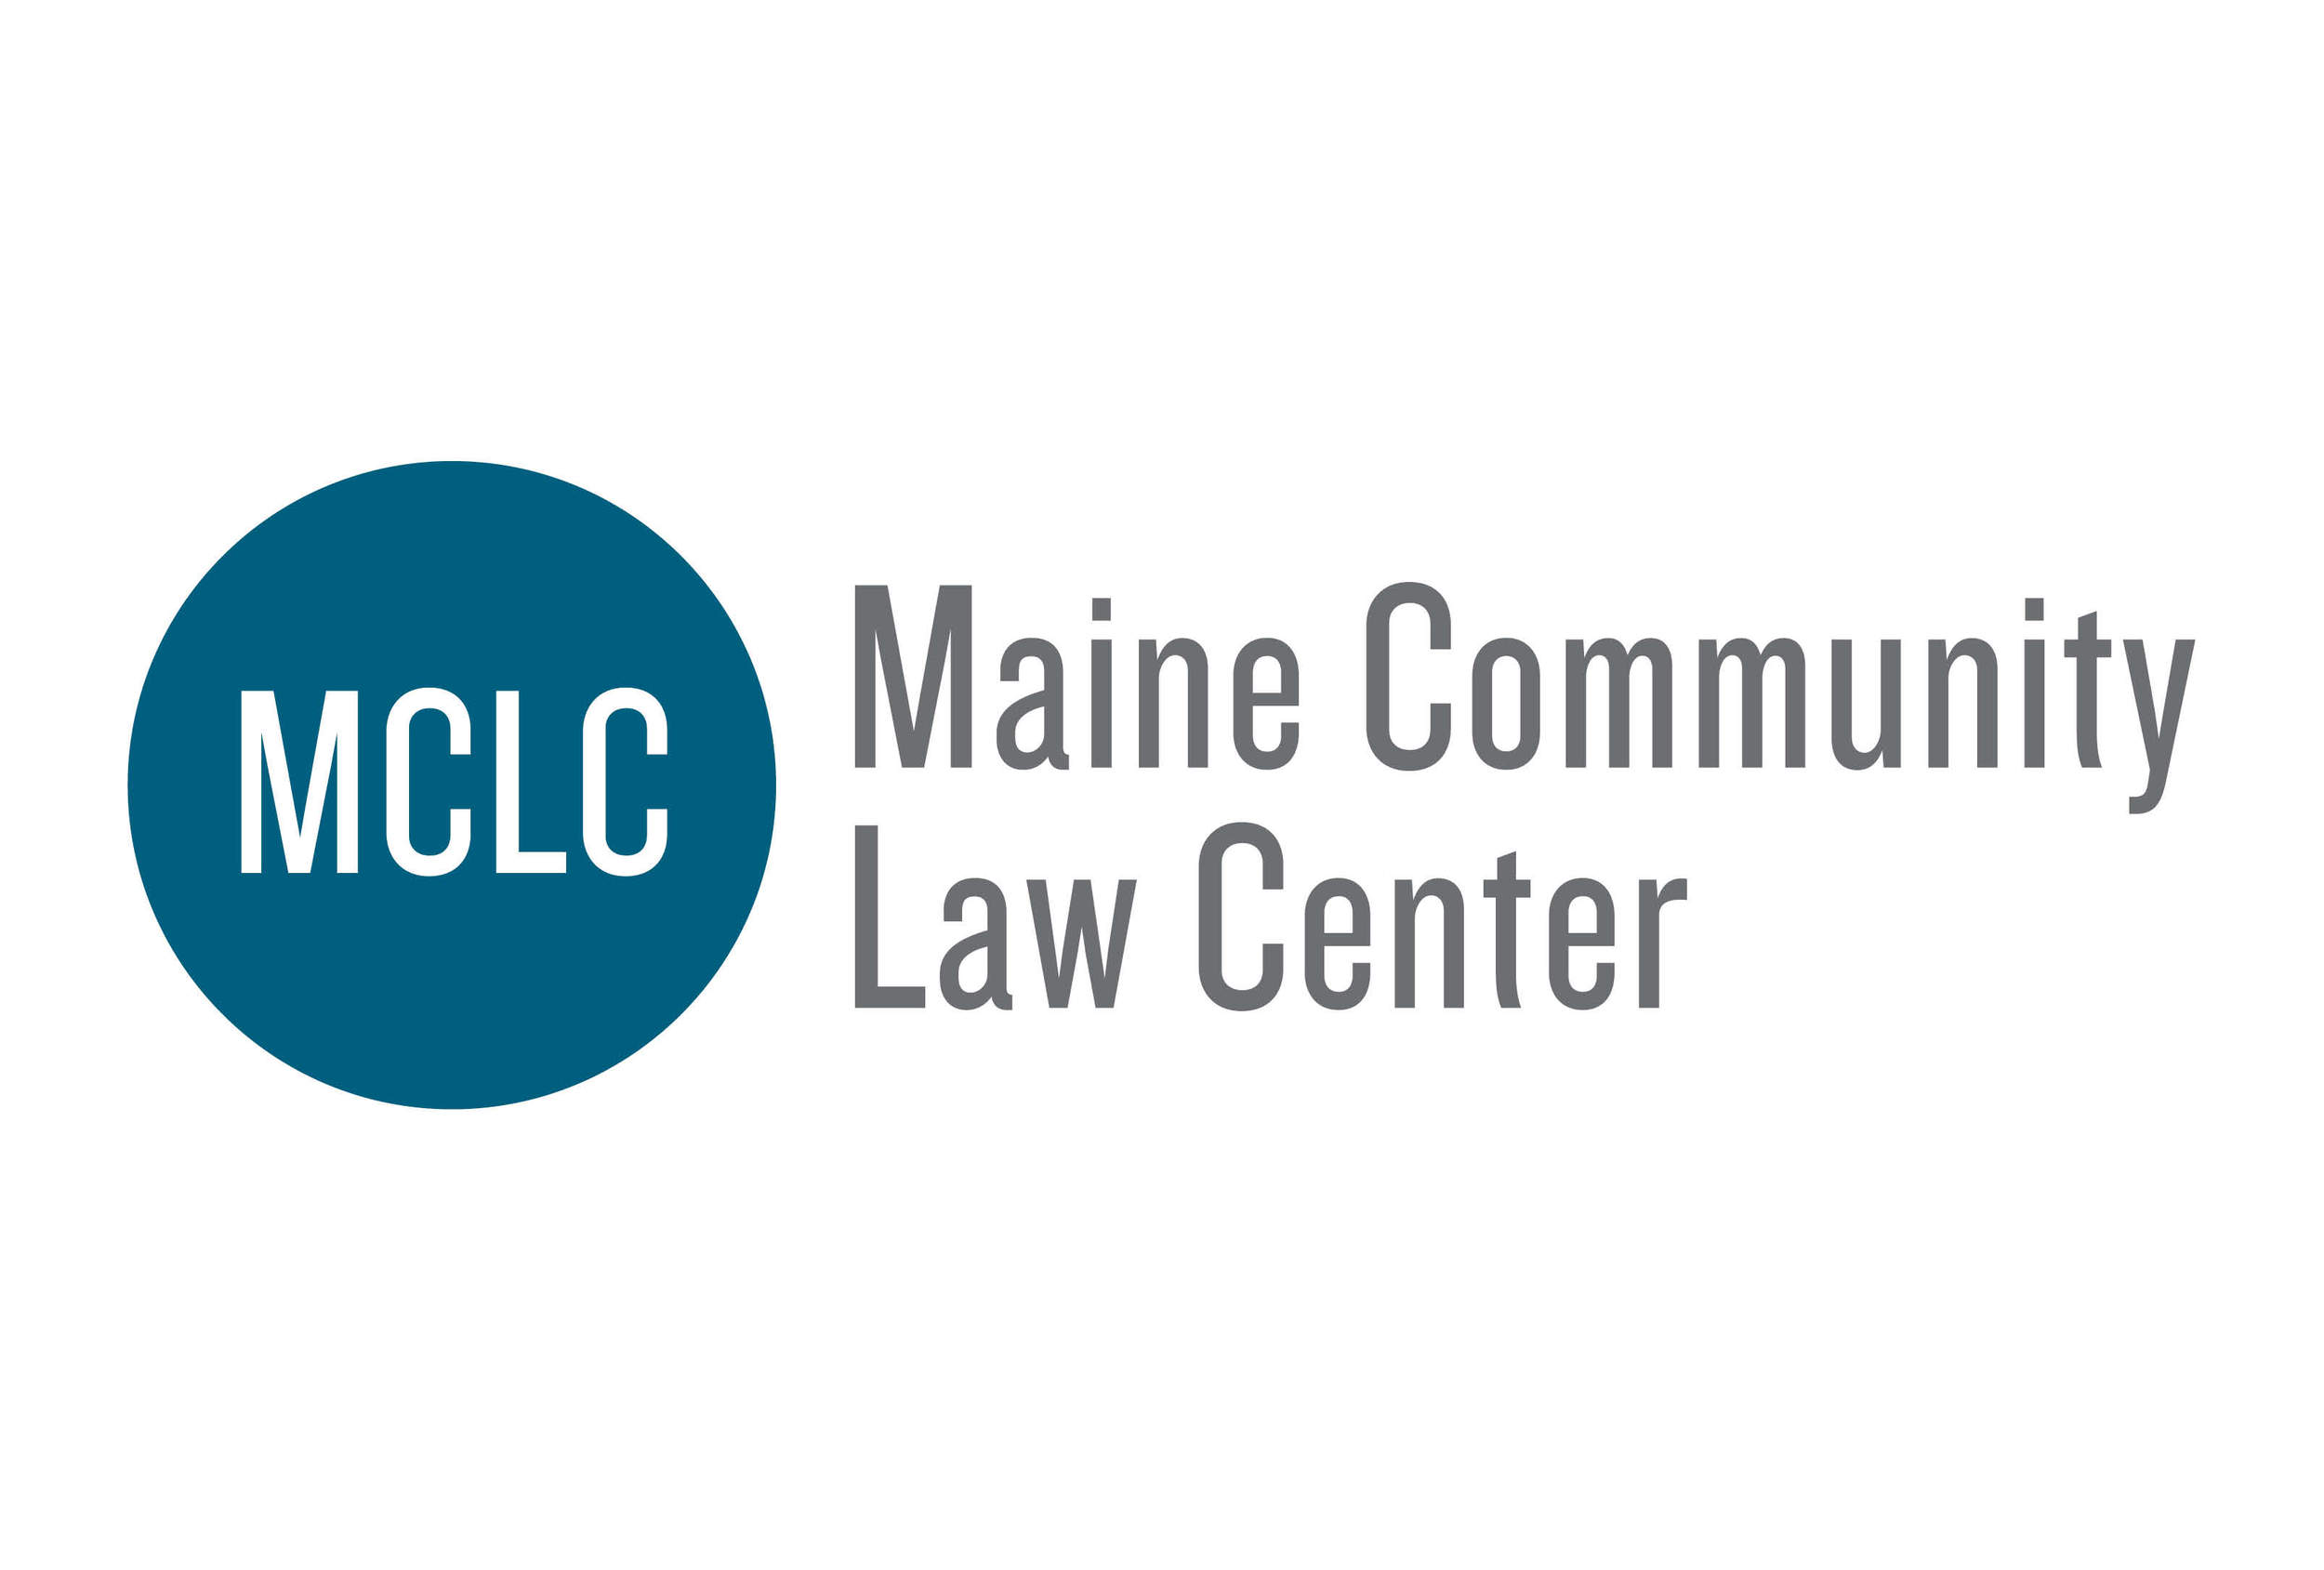 Maine Community Law Center